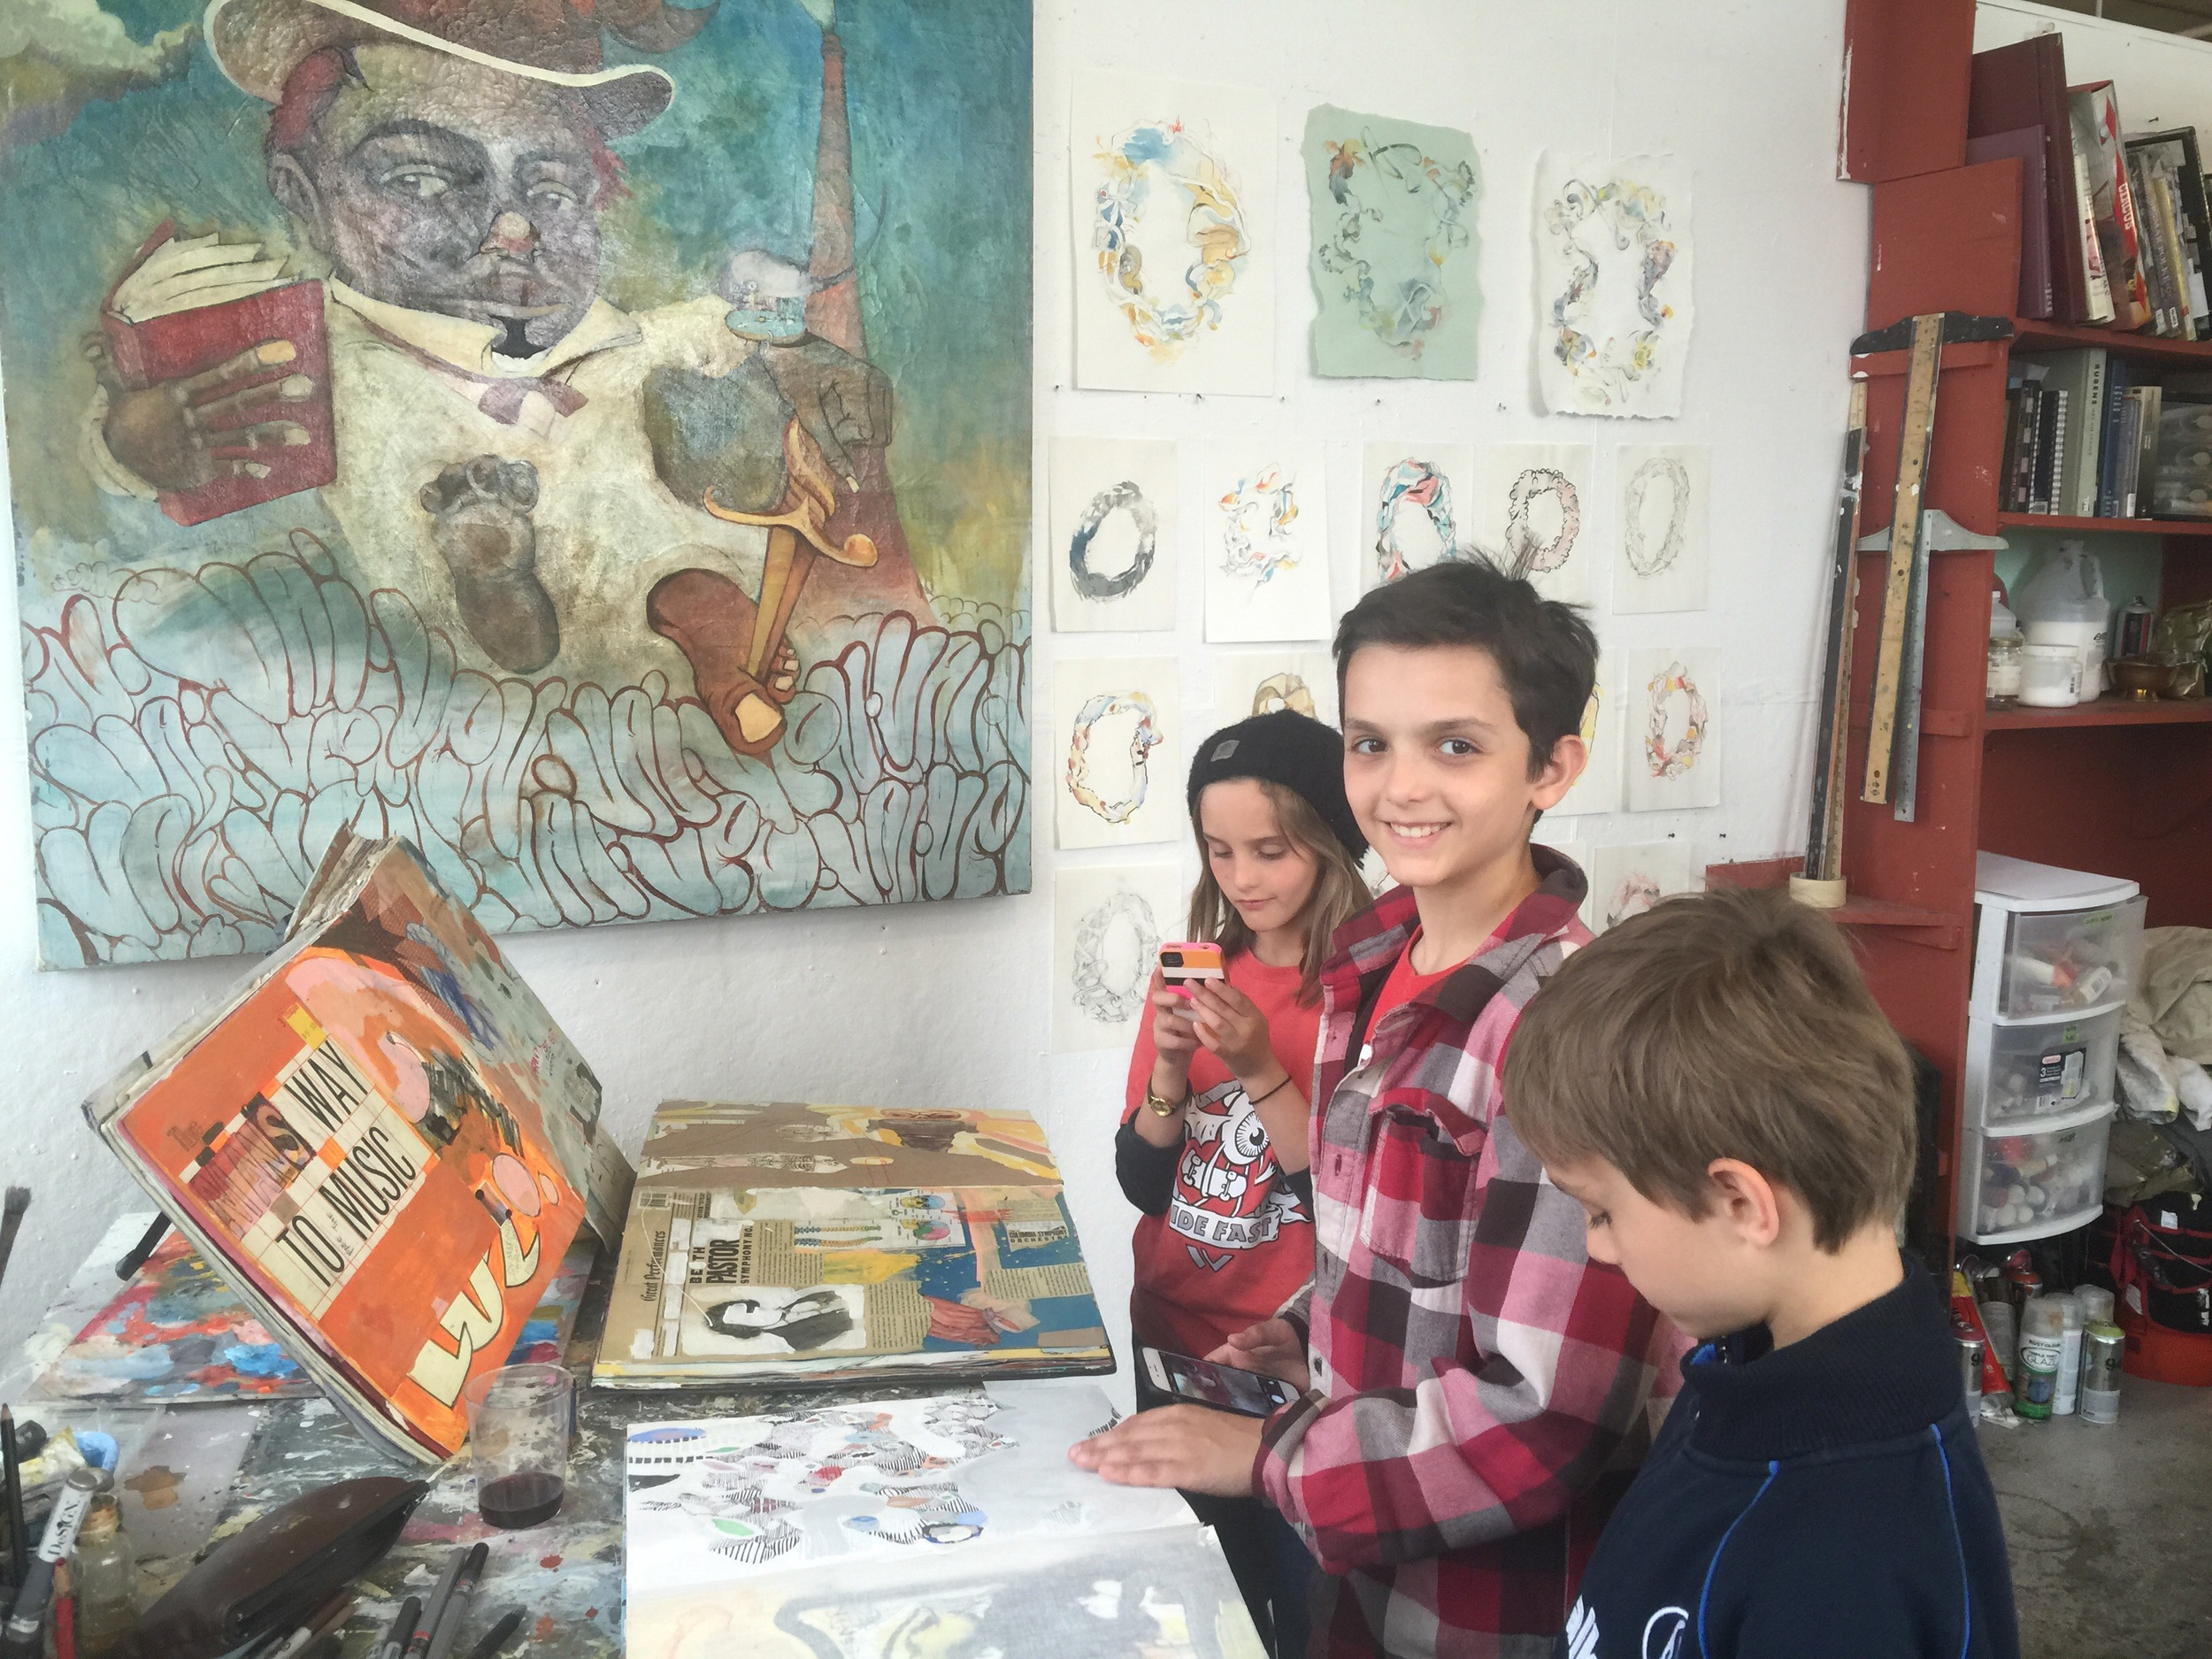 Lina, Lorenzo and Lucas enjoy my painting books during open studios. Brilliant minds, smiling faces and artists-to-be!